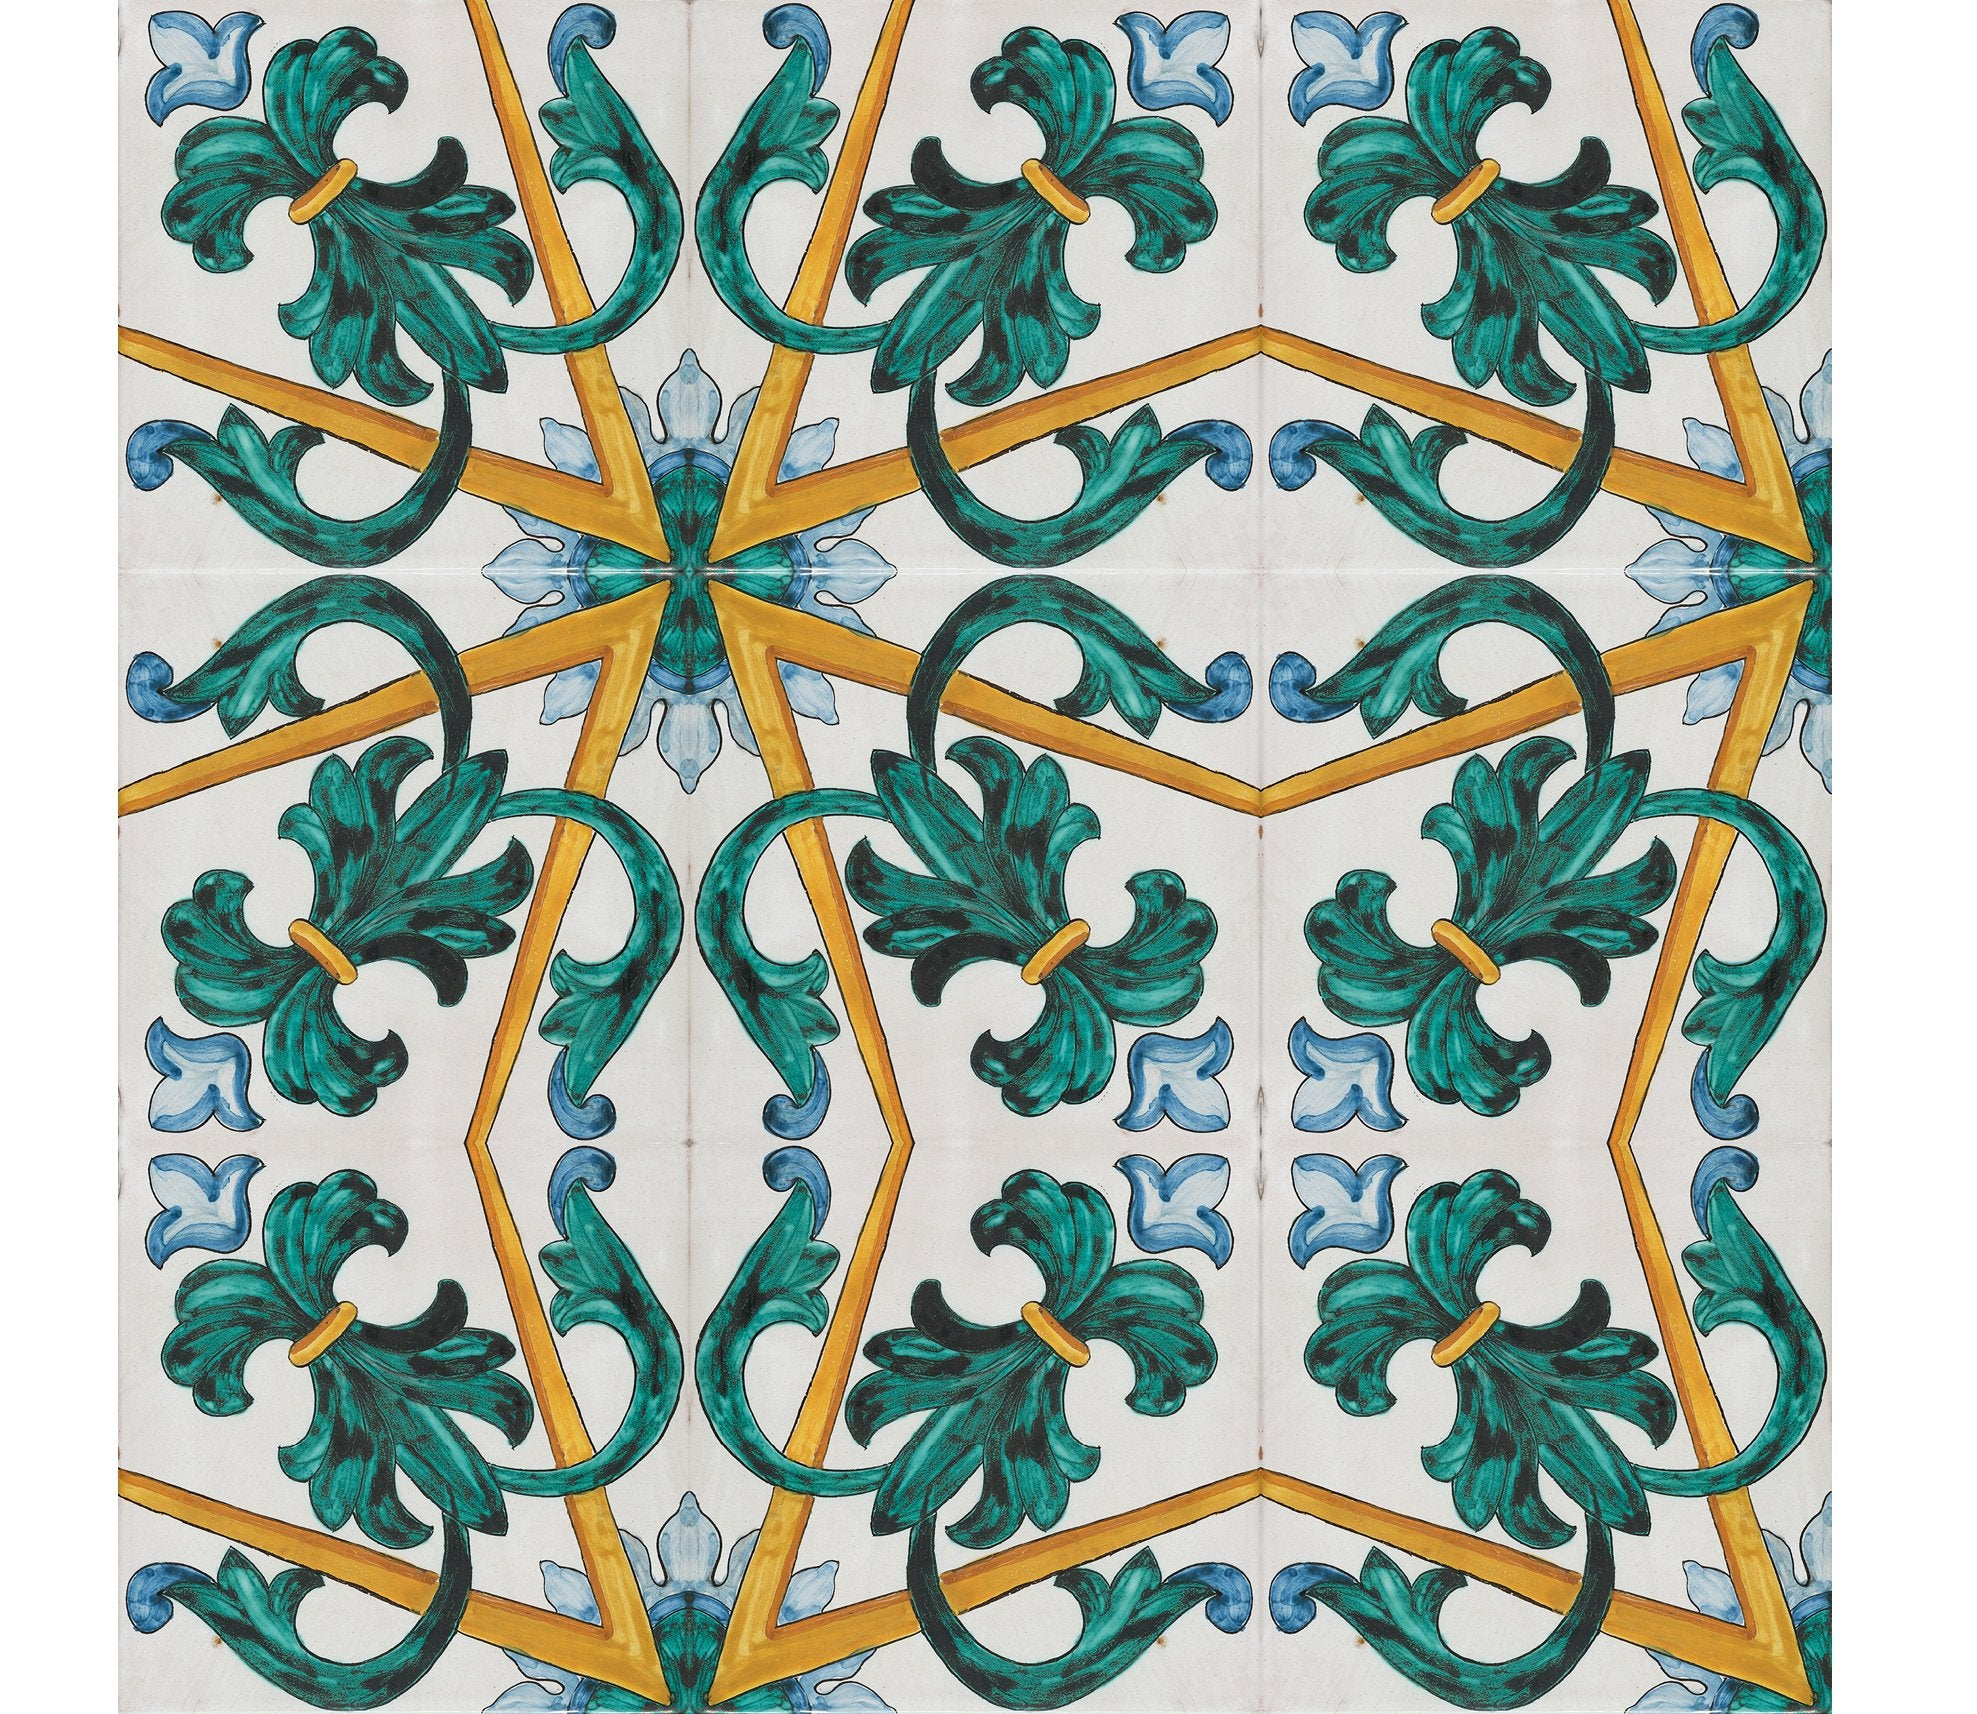 Series S Handpainted Tiles Product Image 36